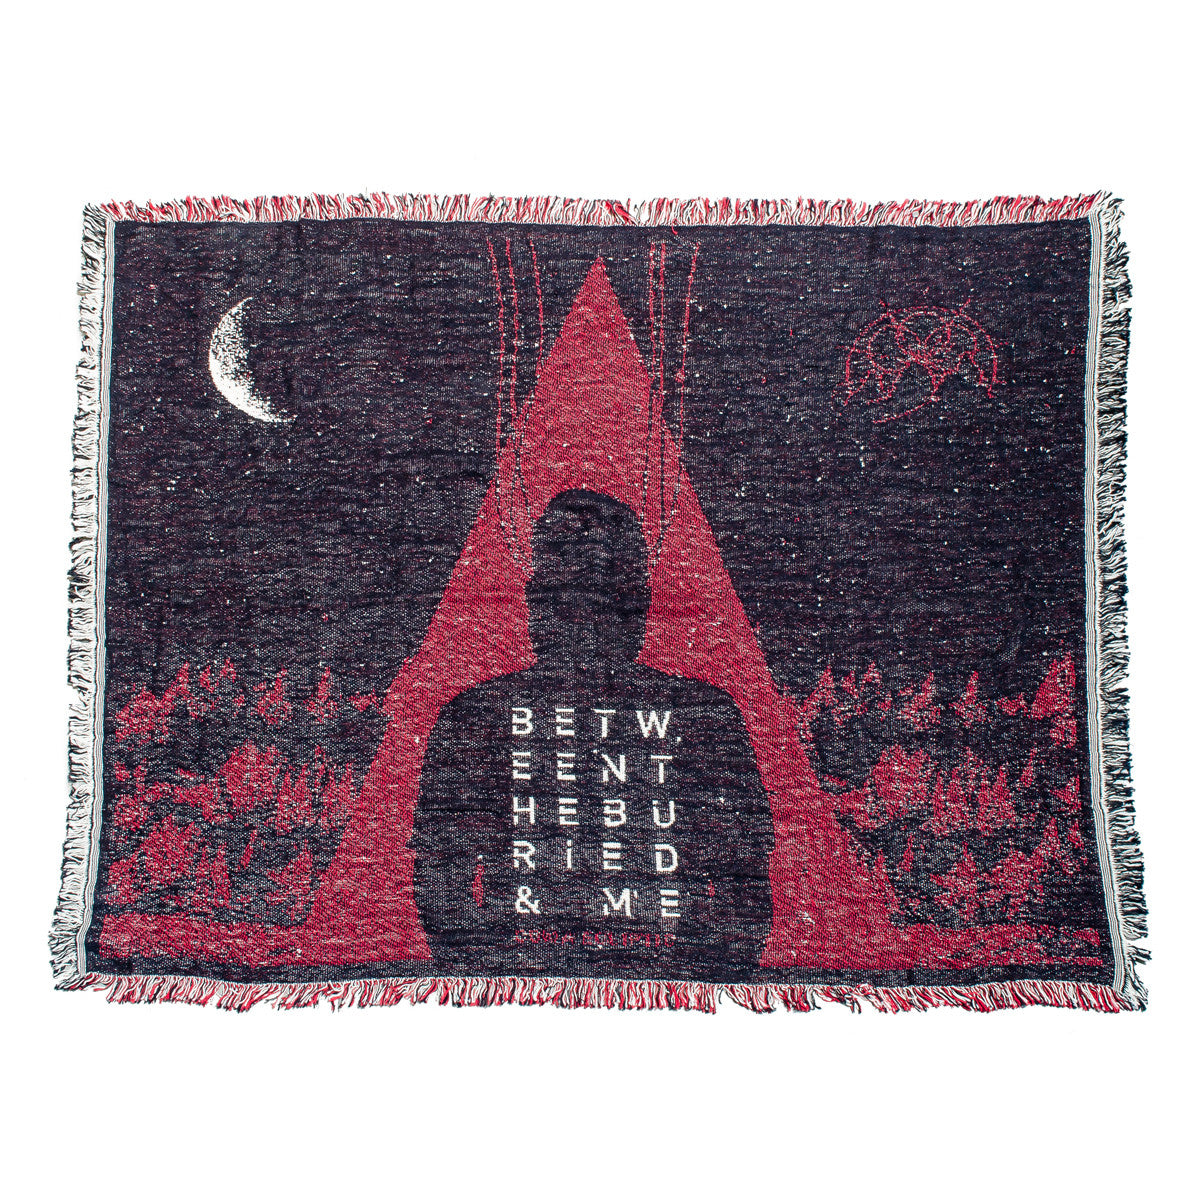 Between the Buried & Me - Throw Blanket - MerchLimited - 1